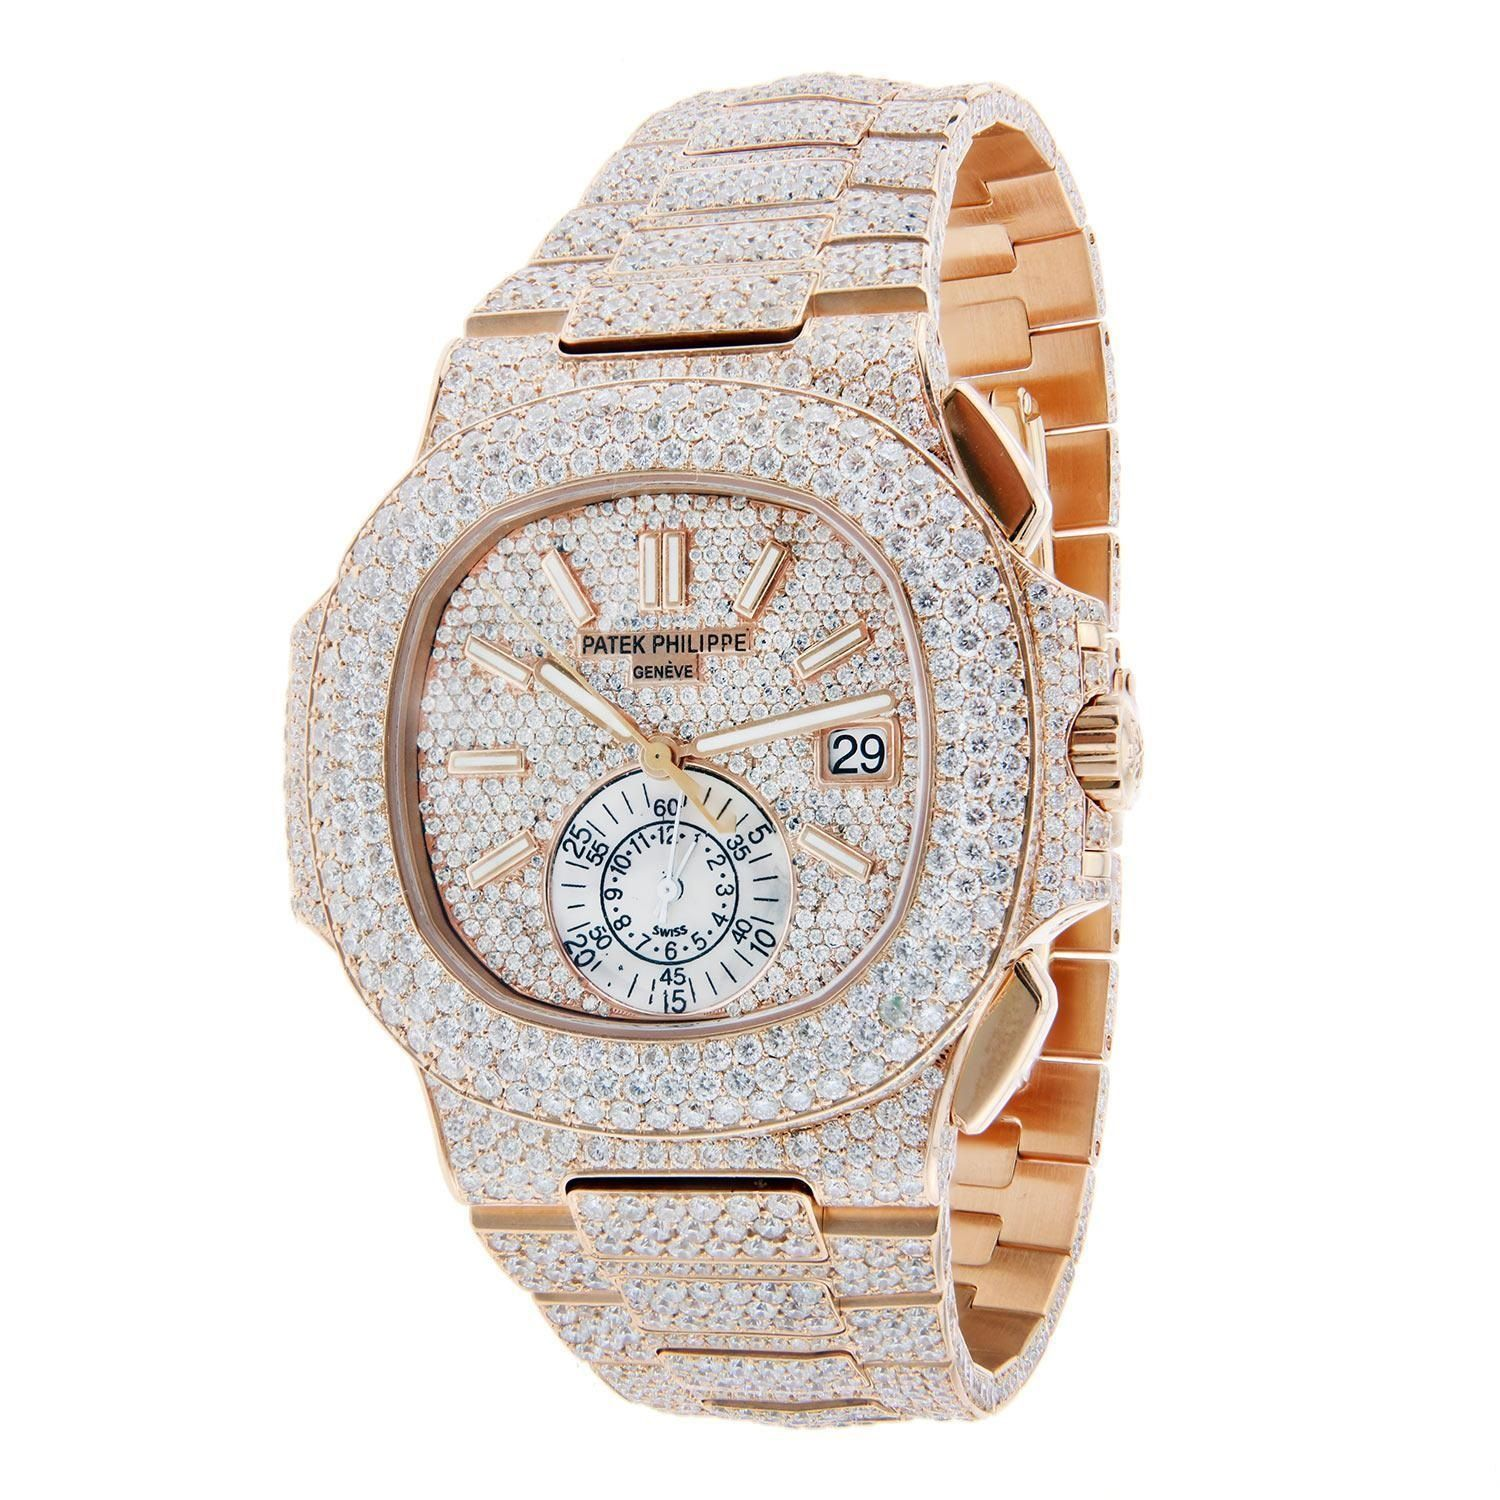 3a5f7800012 Custom Patek Philippe Nautilus Rose Gold Fully Inlaid with F VVS Diamonds  Regular price  145